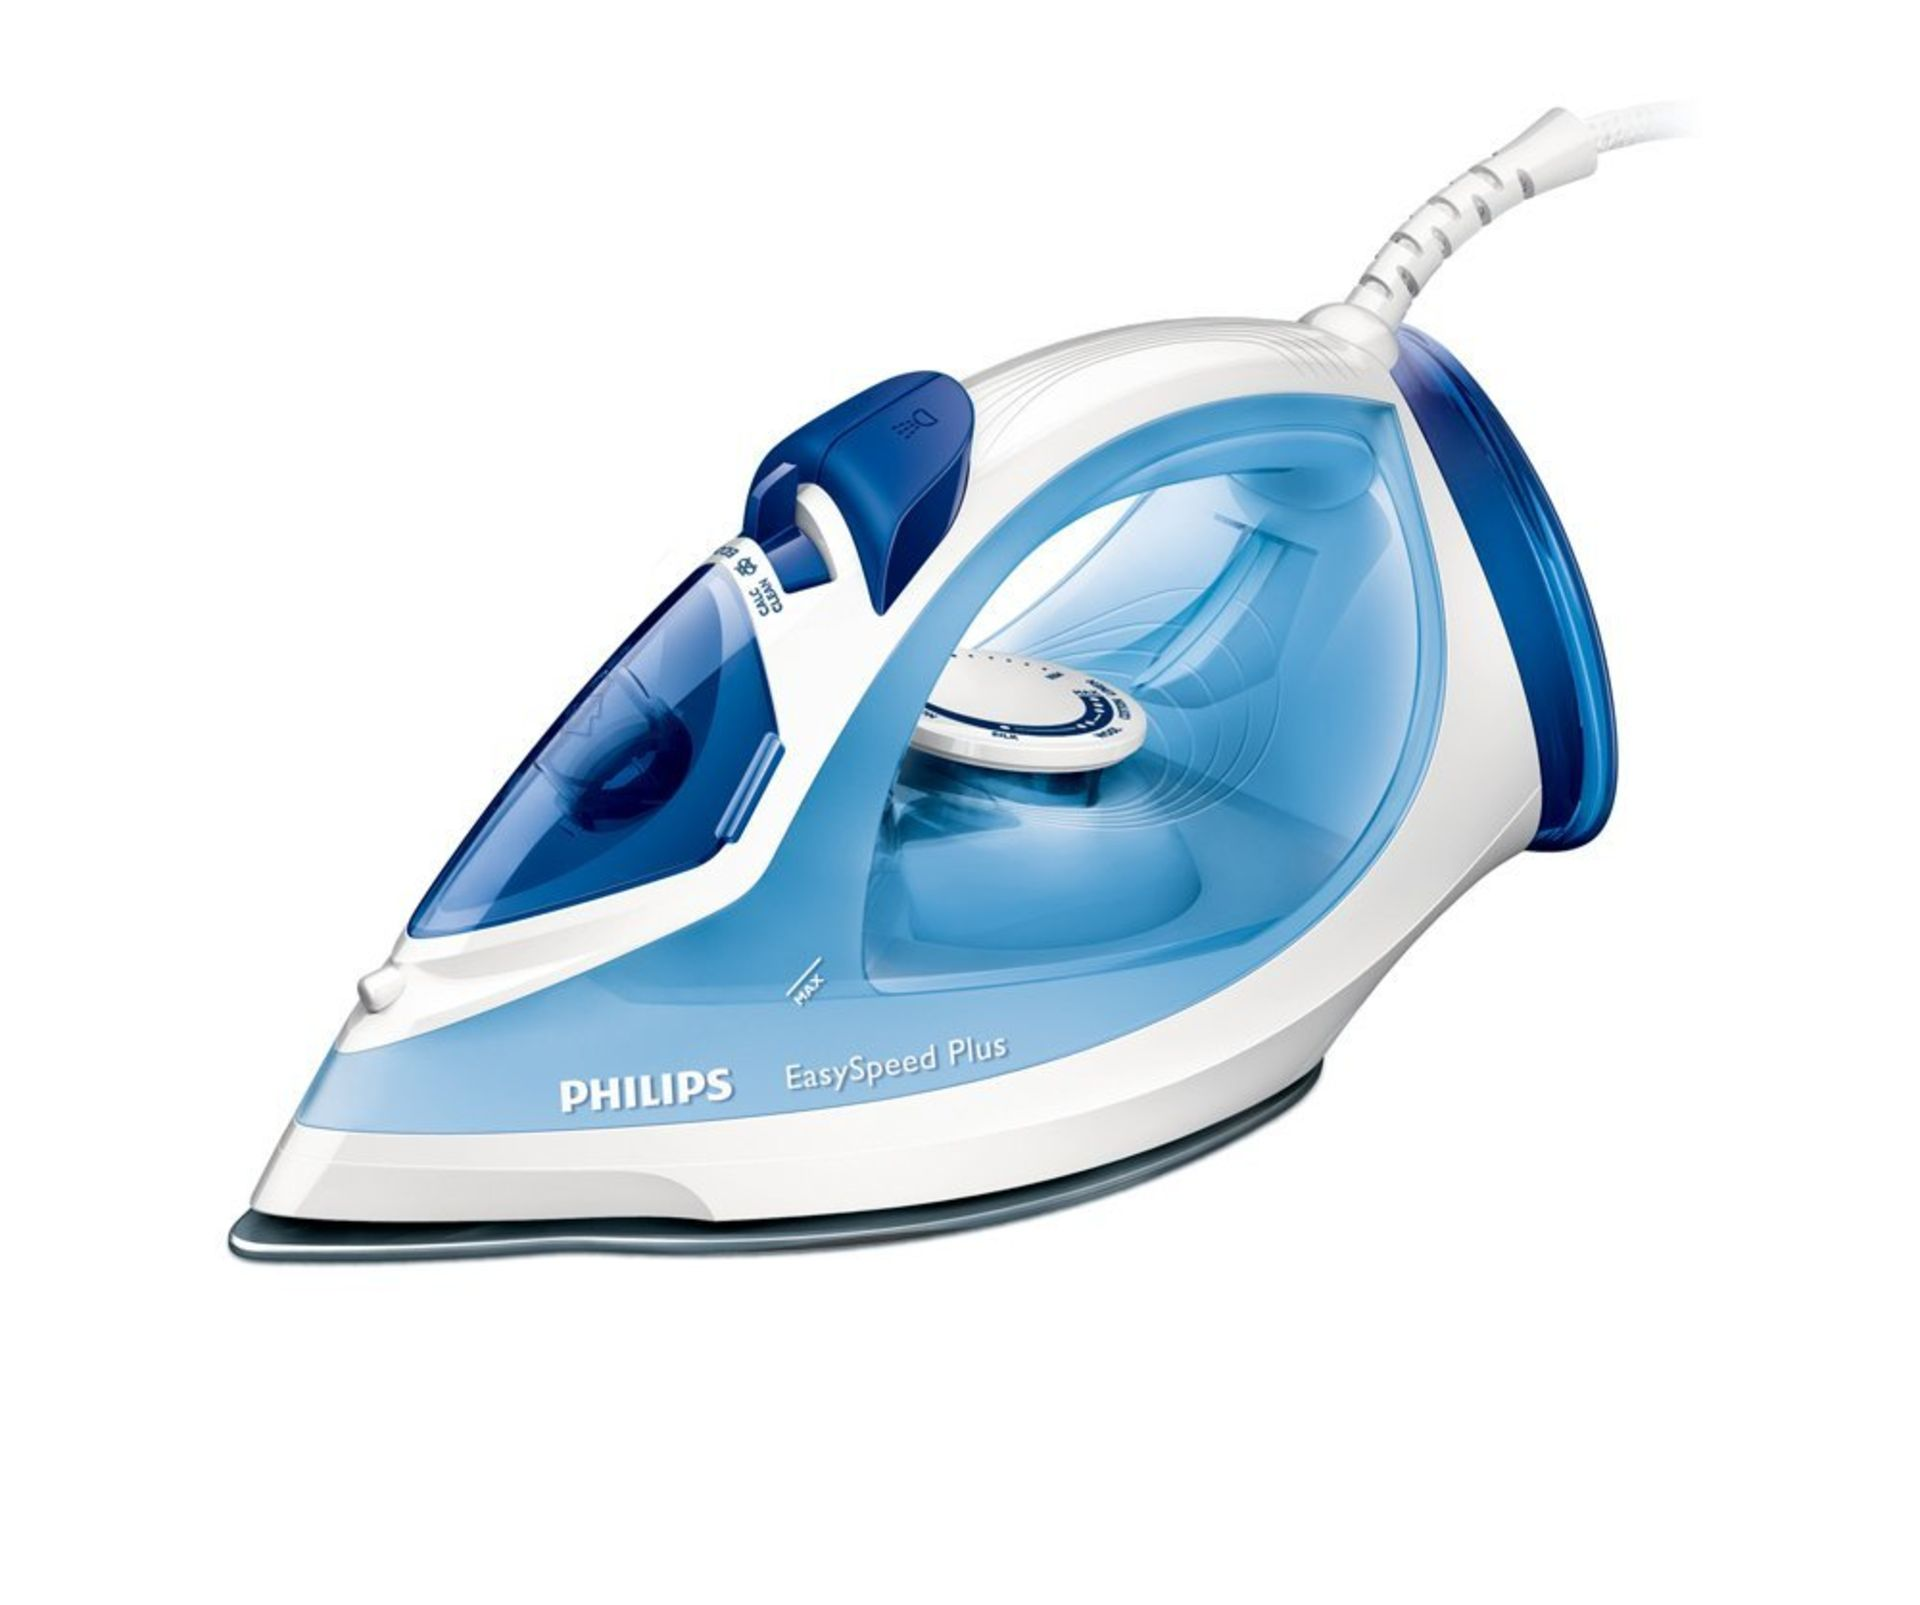 Lot 13184 - V Brand New Philips EasySpeed Non-Stick Steam Iron - £26.75 on Amazon - 2300W - Triple Precision Tip